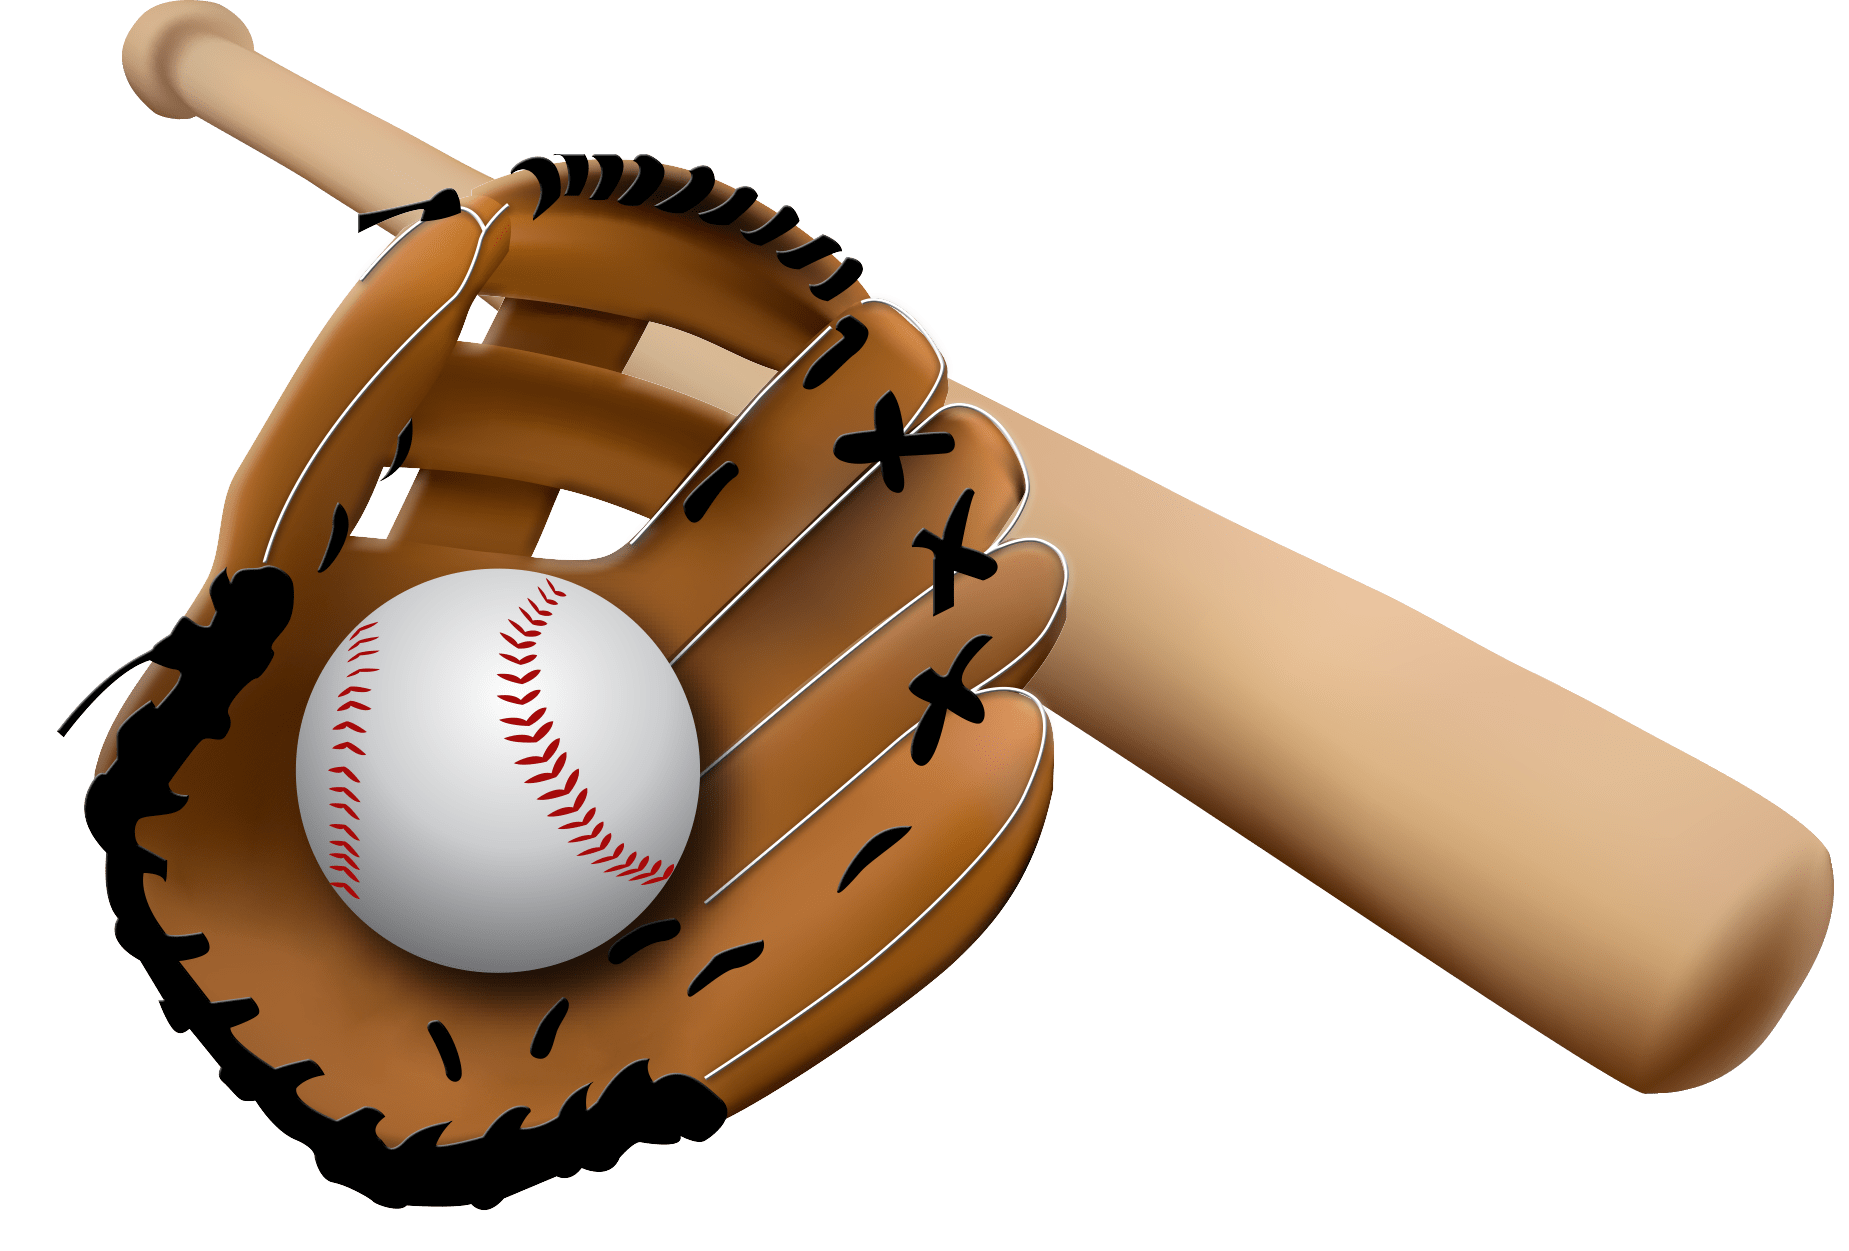 1849x1251 Emerging Baseball And Bat Pictures Ball Cartoon Clip Art Stock